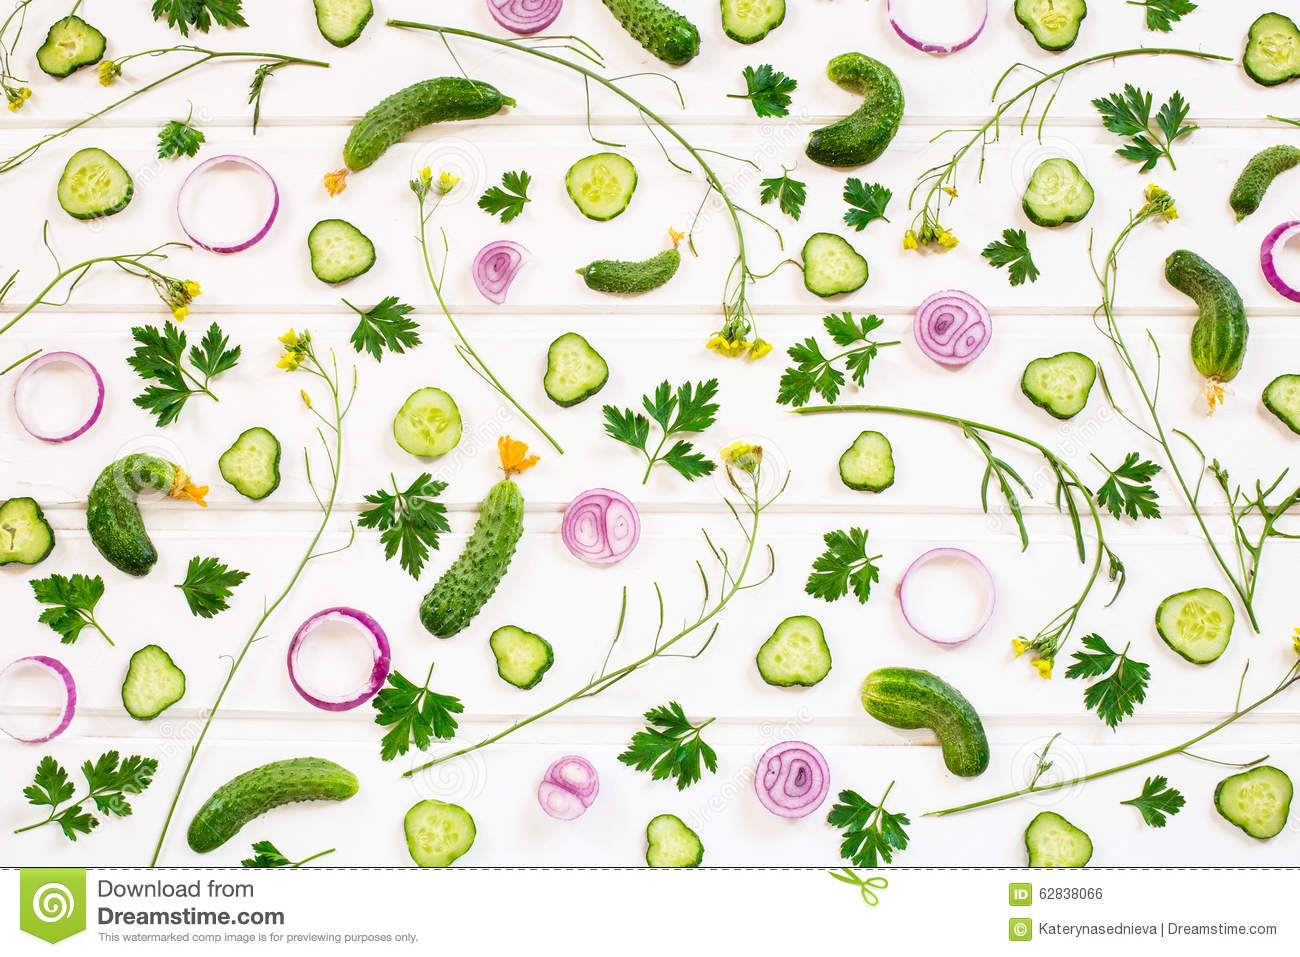 Background of raw vegetables.